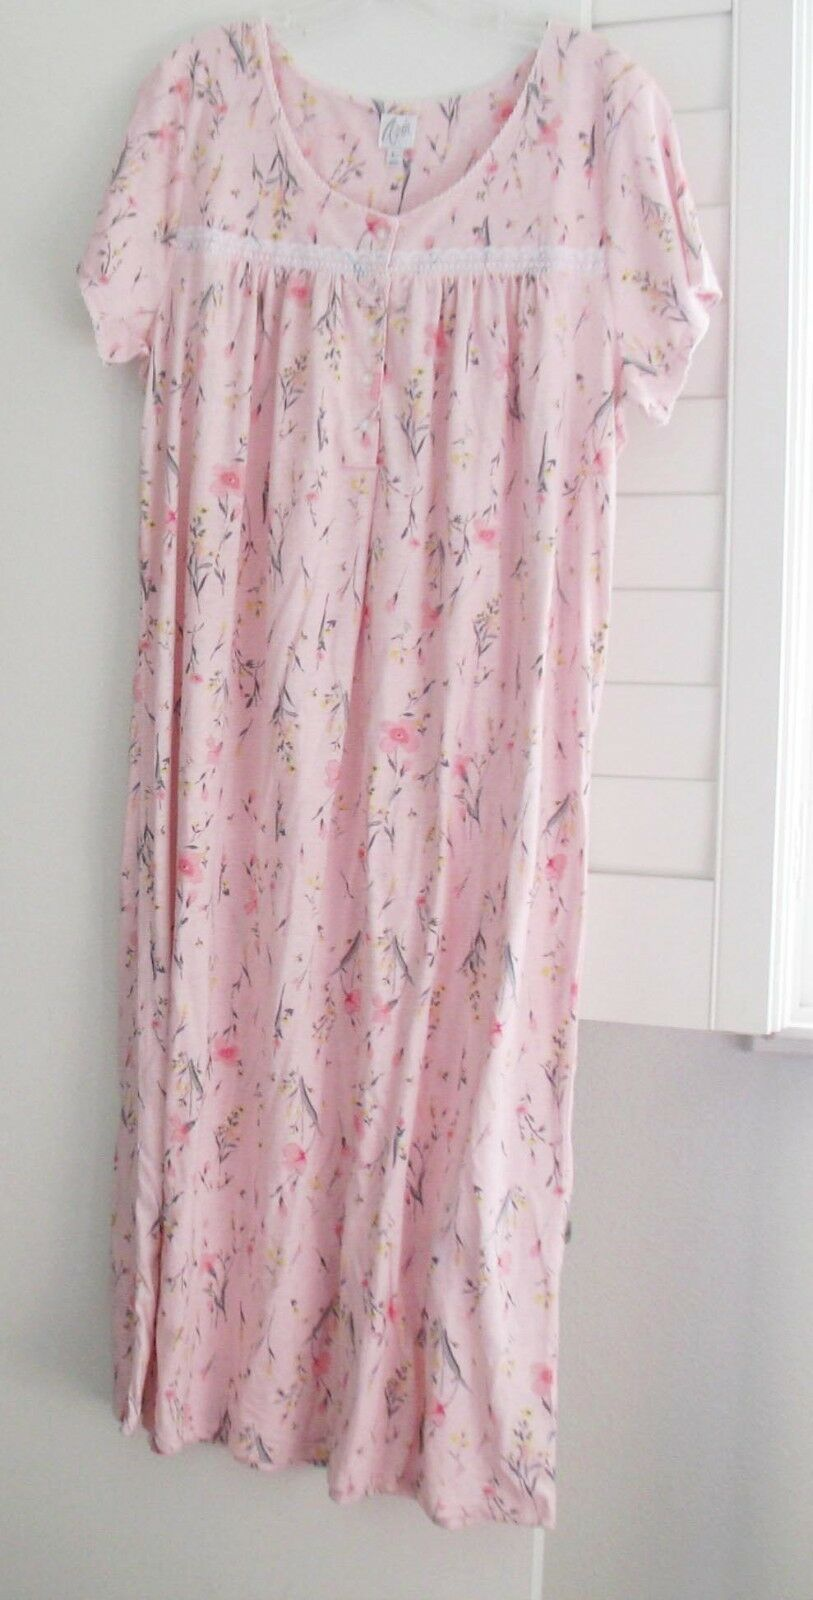 Aria Womens Pink Floral Short Sleeve Nightgown A28117805 Sz L - NWT